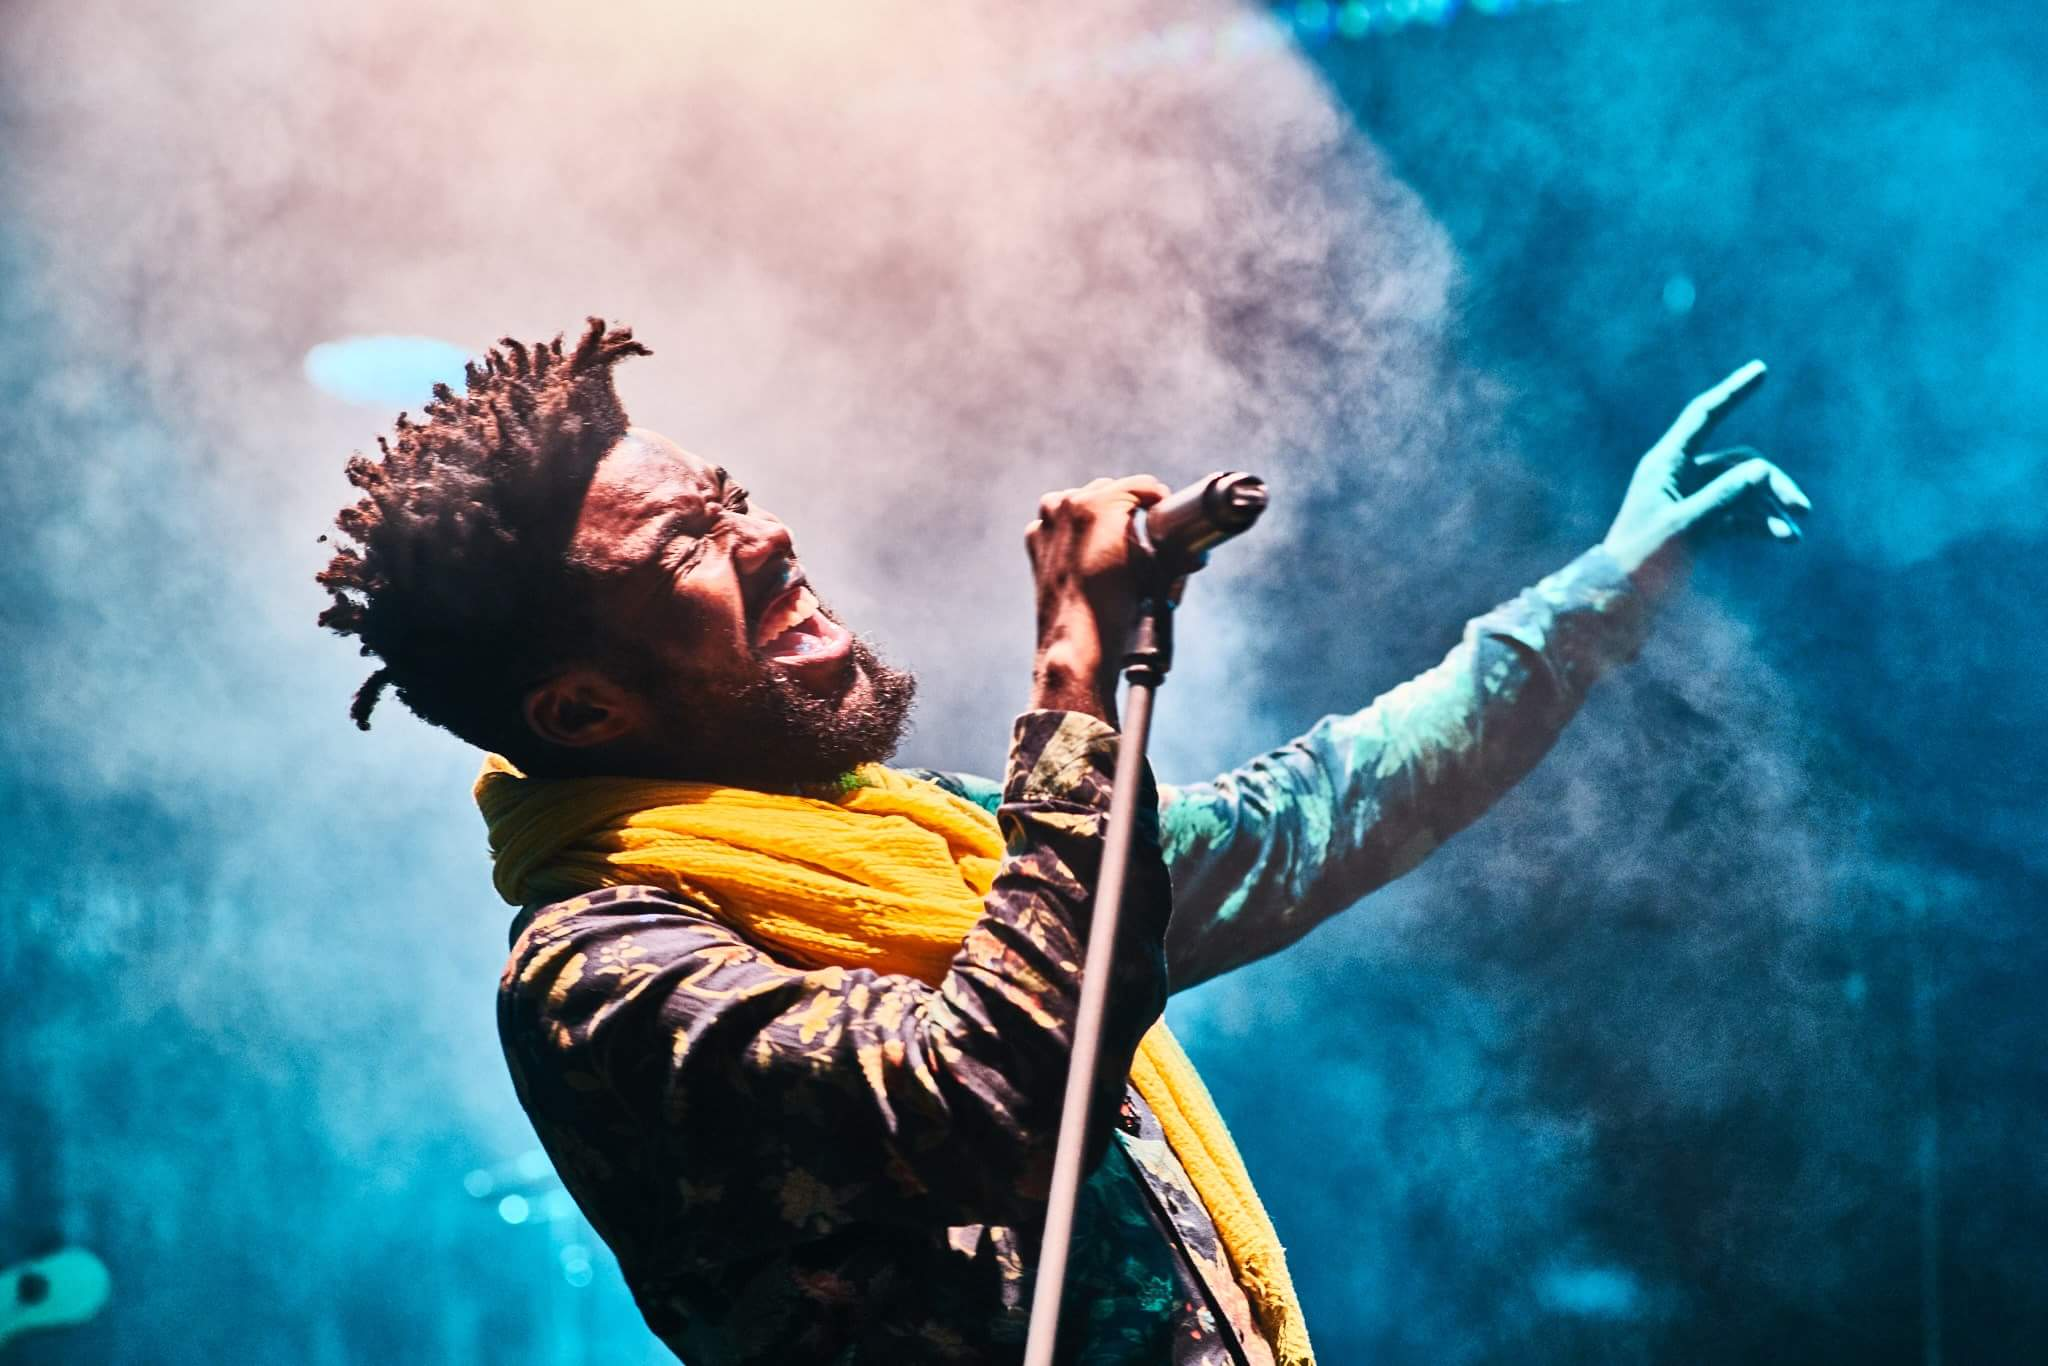 Best A7RII Focus Settings for Concert Photography (Low Light